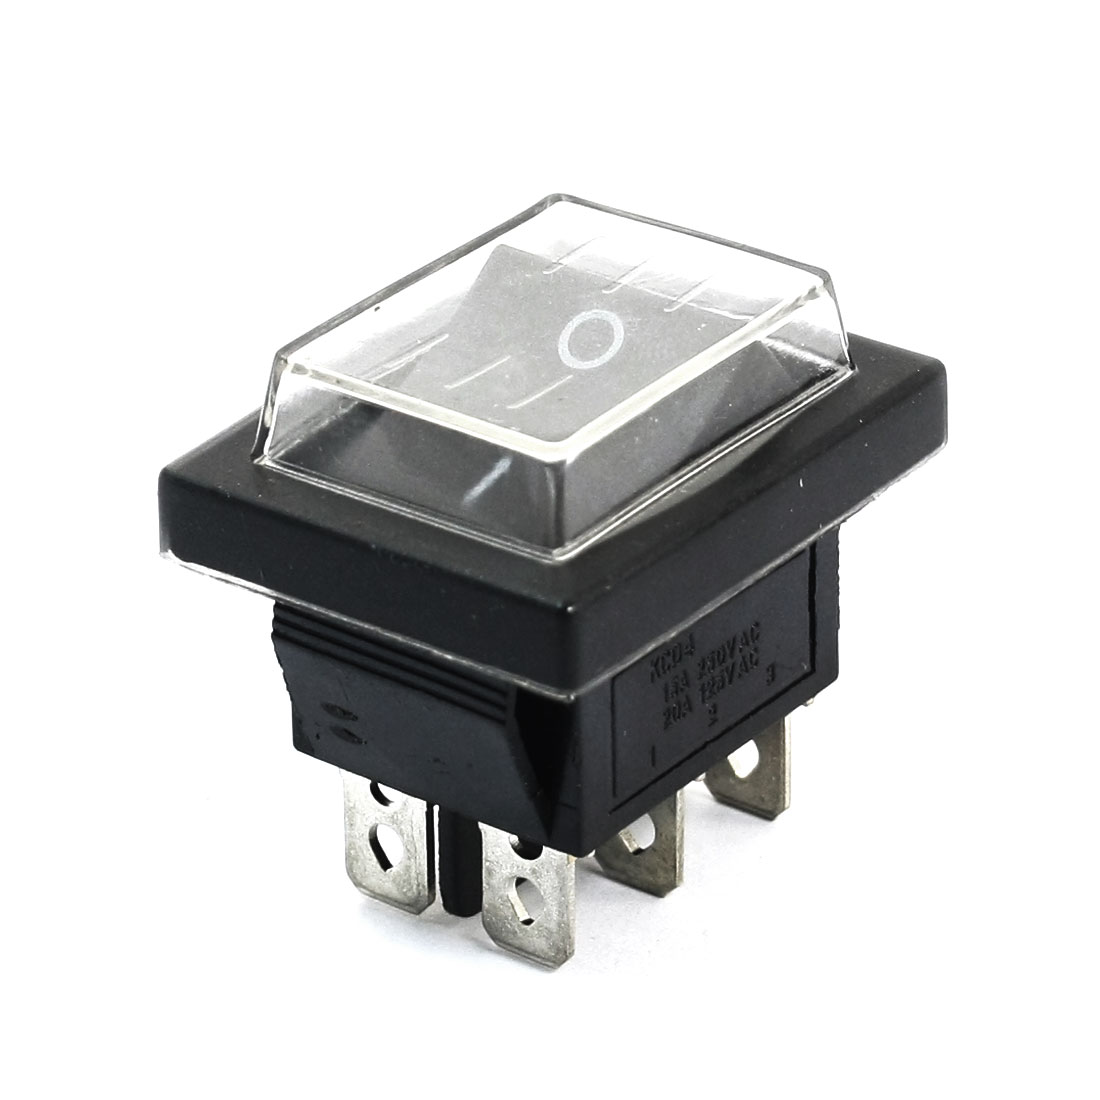 AC250V 16A 125V 20A DPDT 2NO 2NC 6 Pin Soldering 2 Position ON-OFF Snap in Mounting Waterproof Cover Boat Rocker Switch